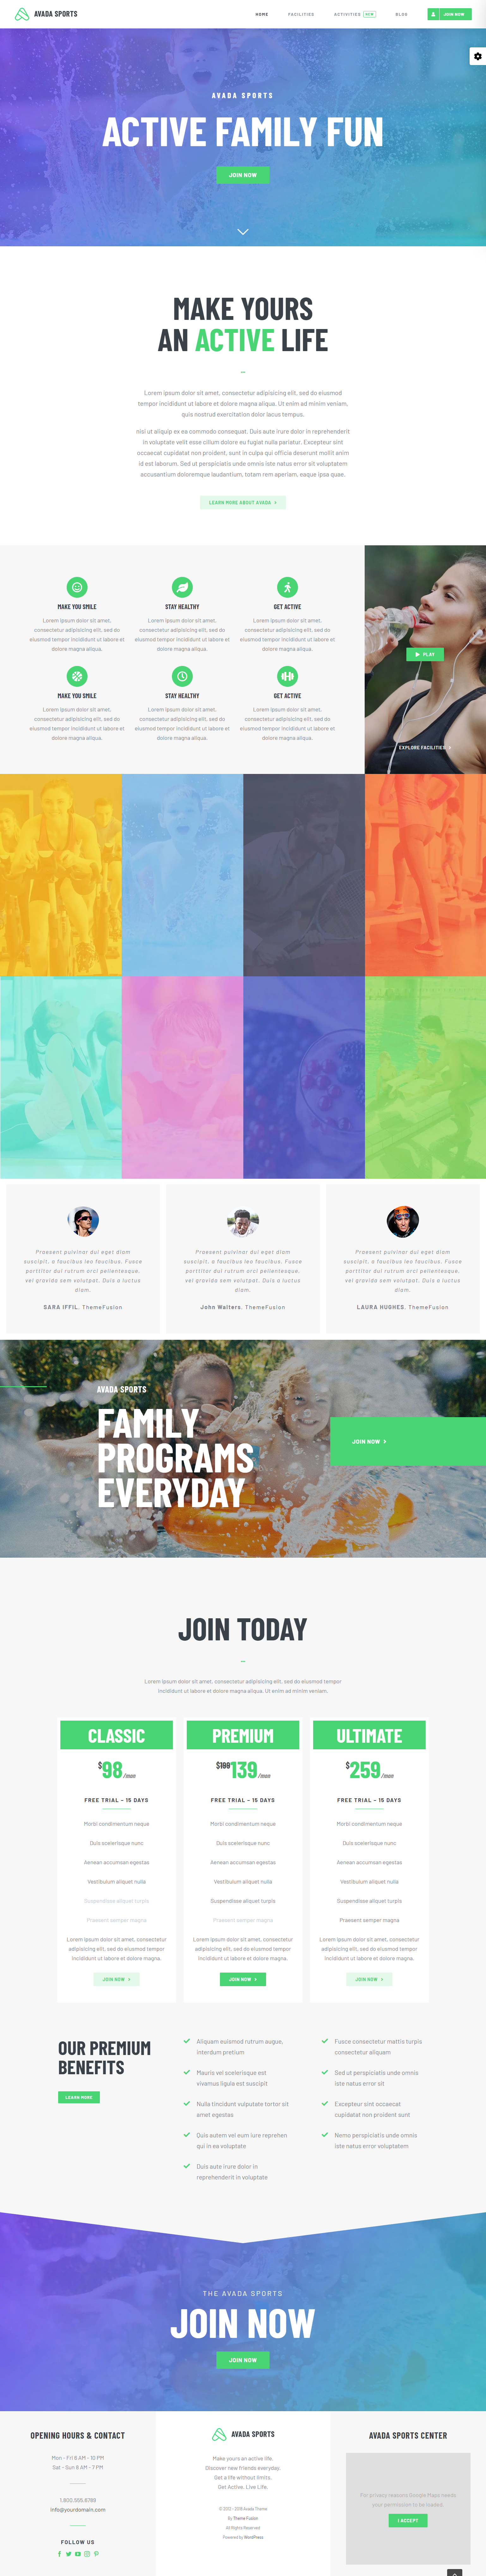 Giao diện Website Landing page Sport - Thiết kế website thể thao